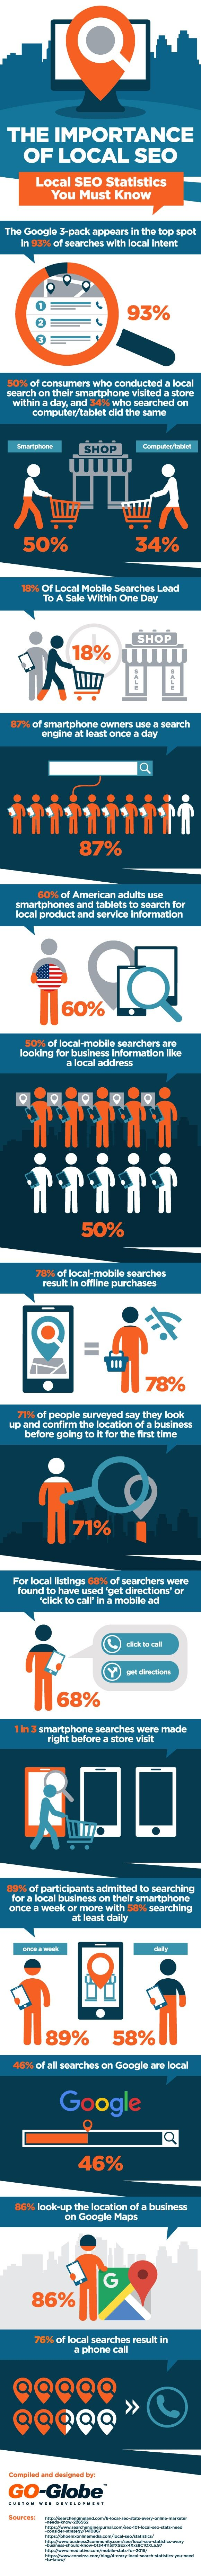 local-seo-stats-infographic.jpg